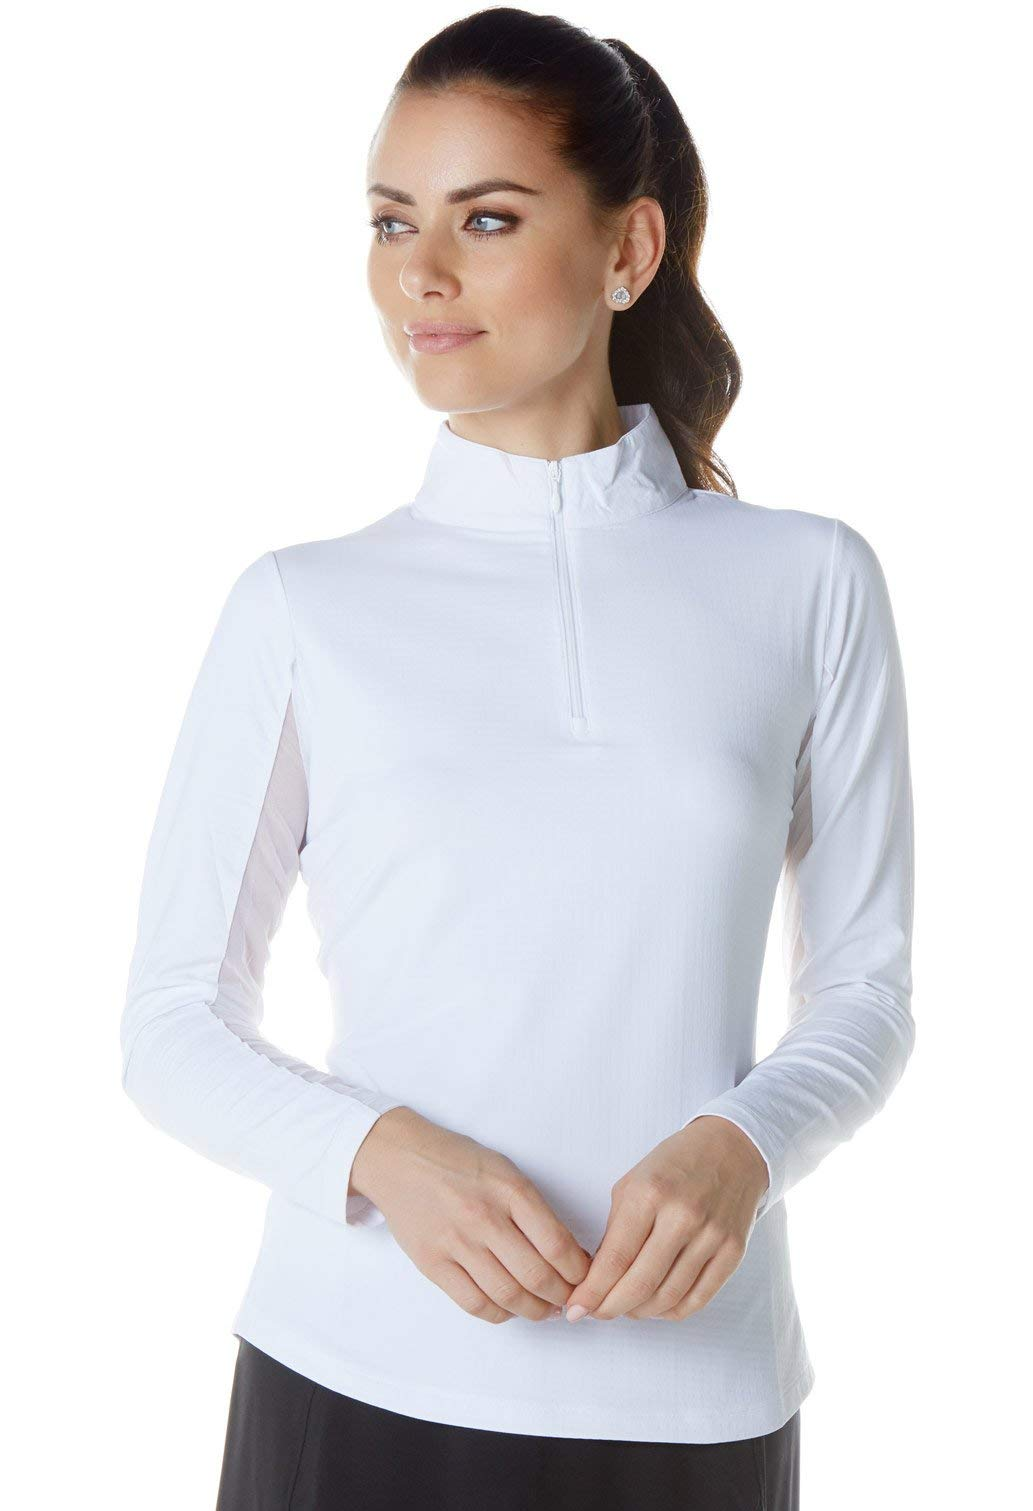 Solid Mock Neck Top - 80000 (XS, White)	 by IBKUL